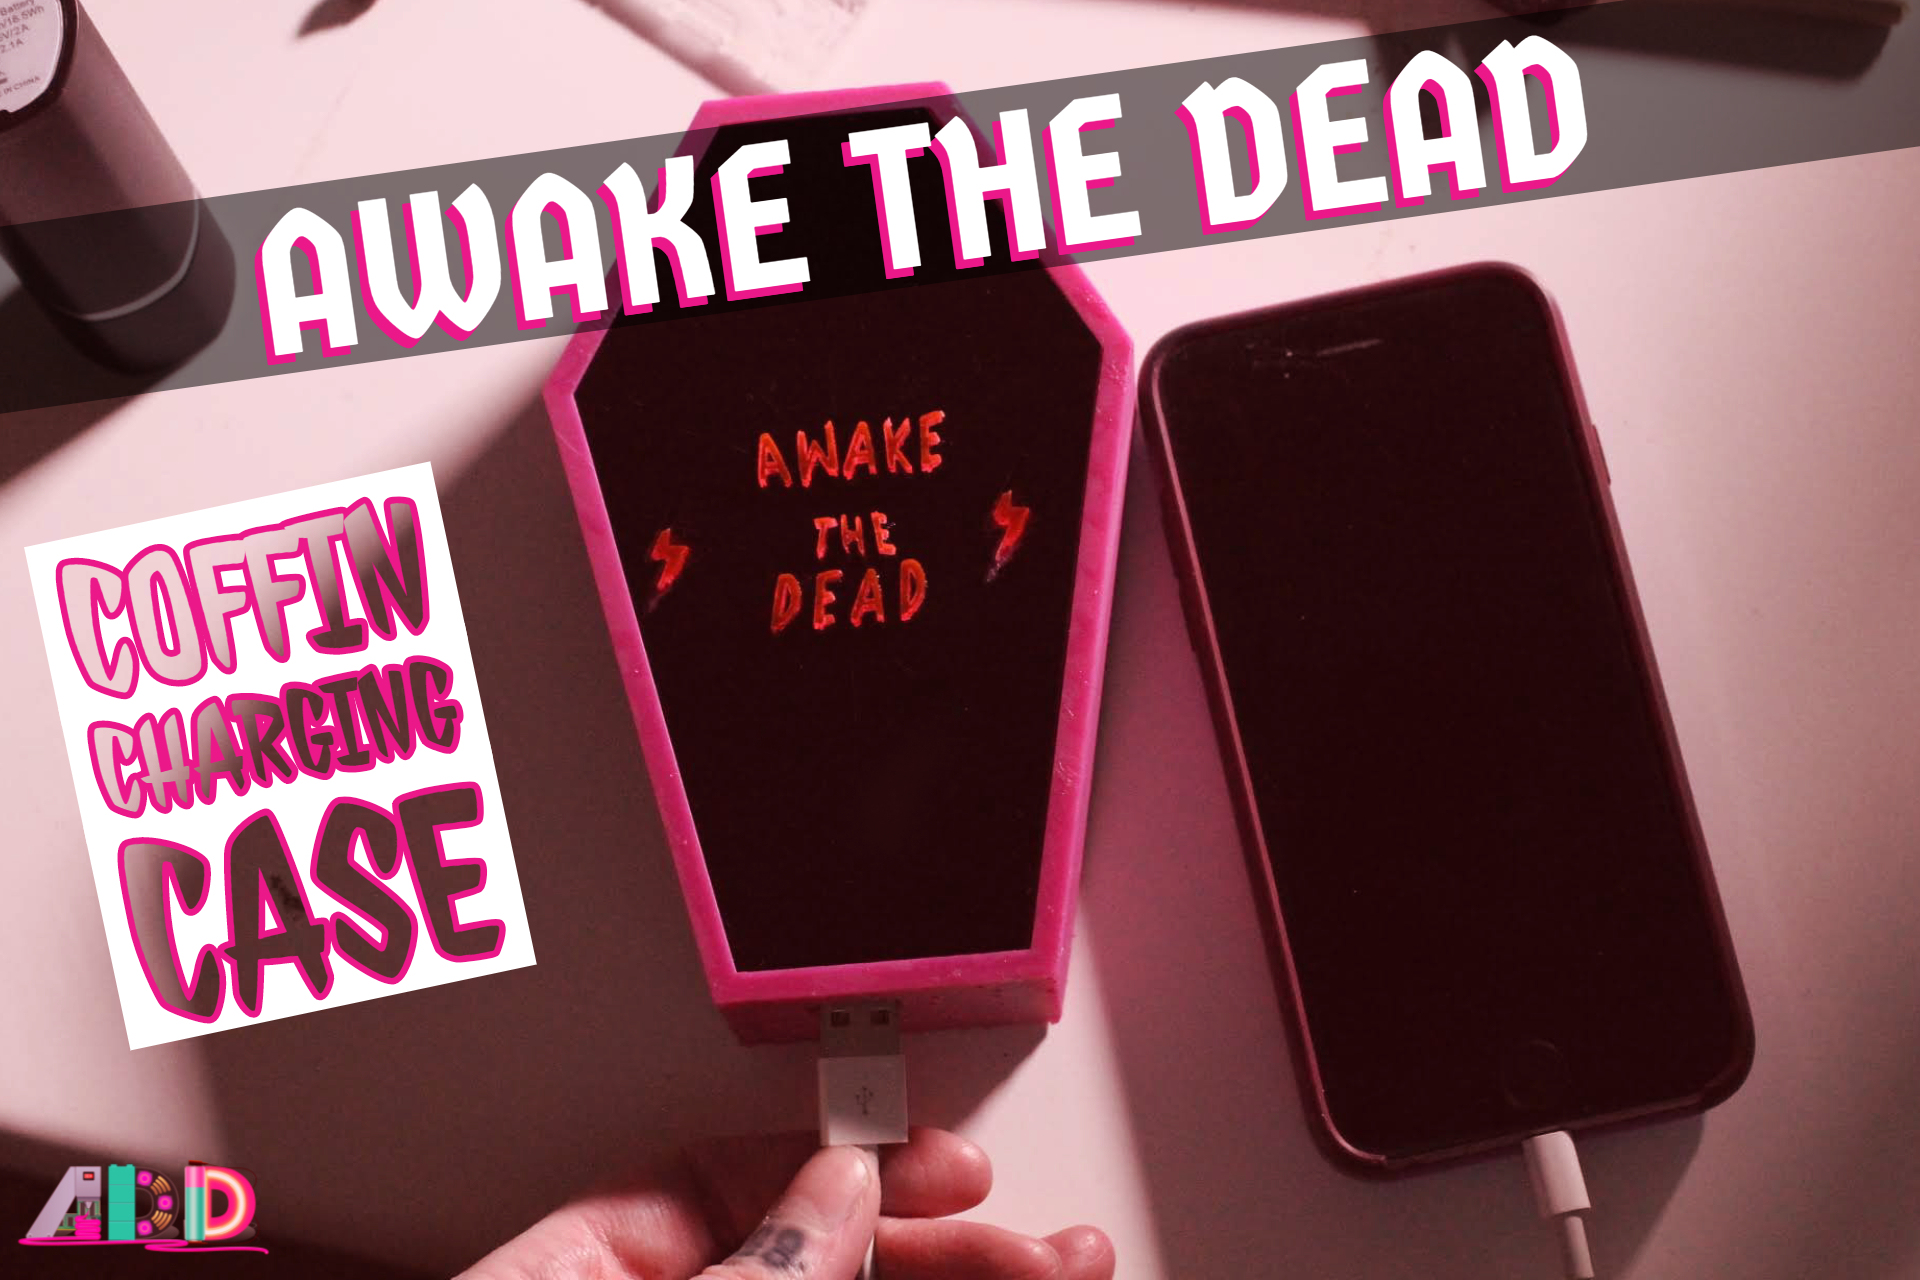 Awake the Dead 3D Printed Coffin Charger Case